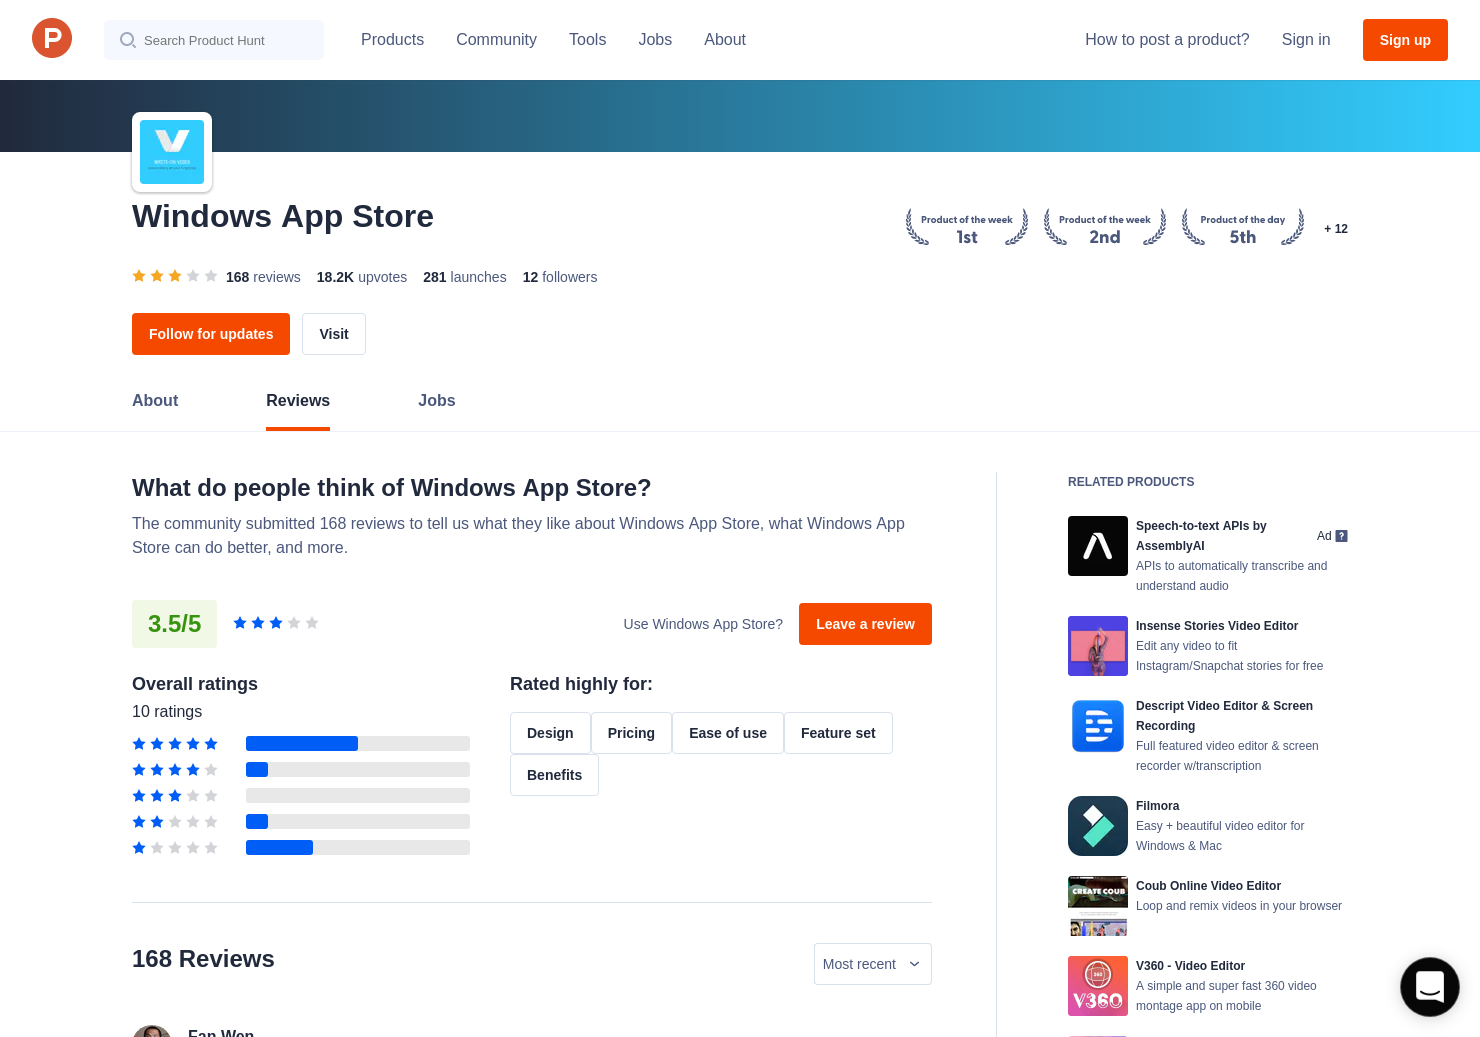 2 Microsoft Authenticator Reviews - Pros, Cons and Rating